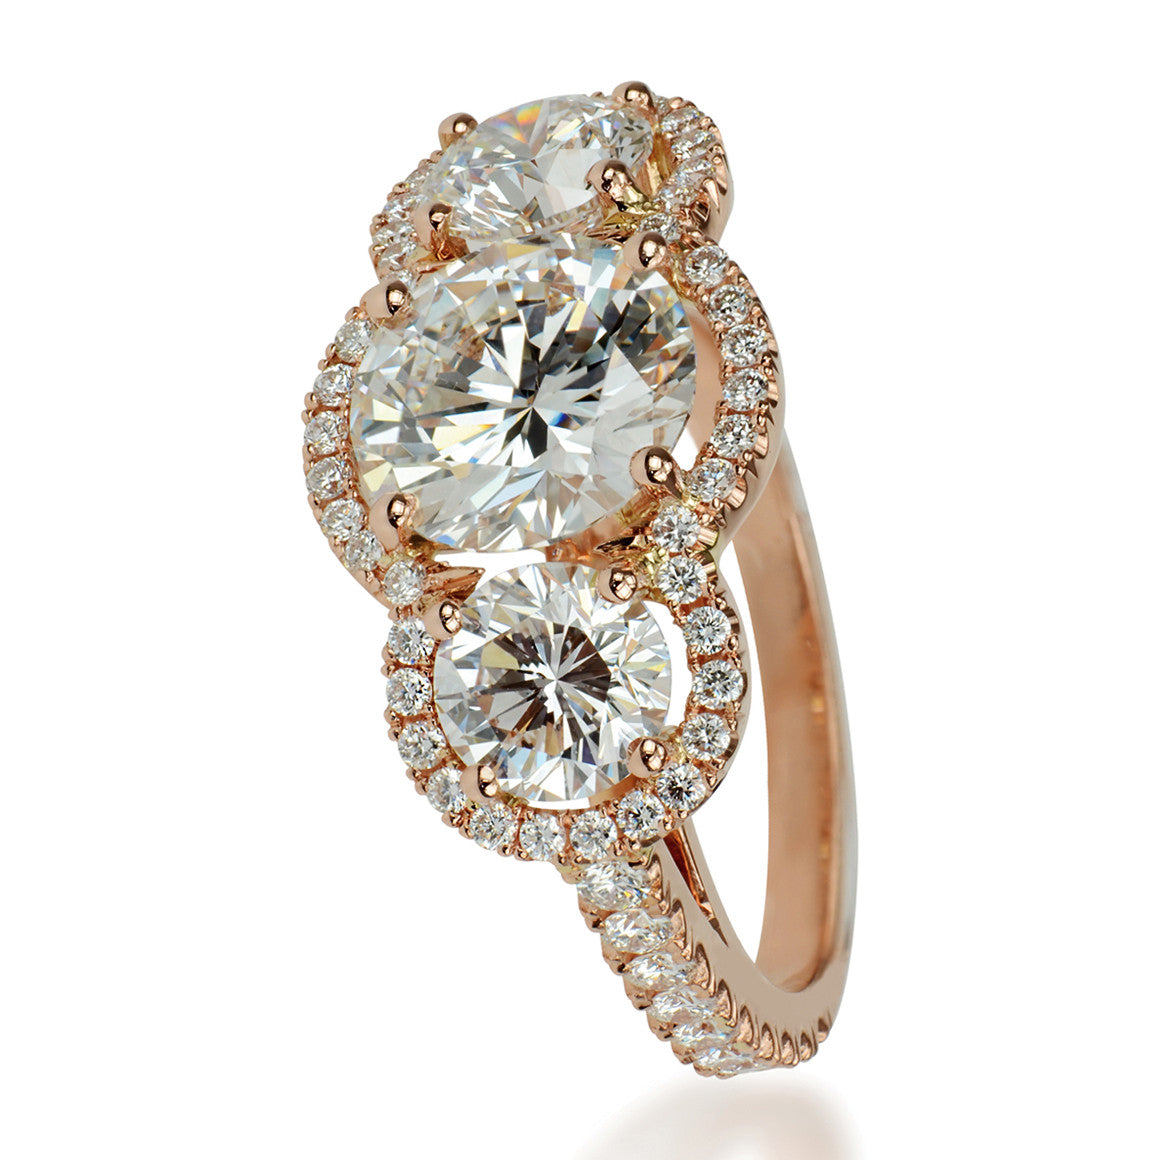 18ct Rose Gold Micro Set 3 Stone Diamond Ring 255cts Chantal Diamonds